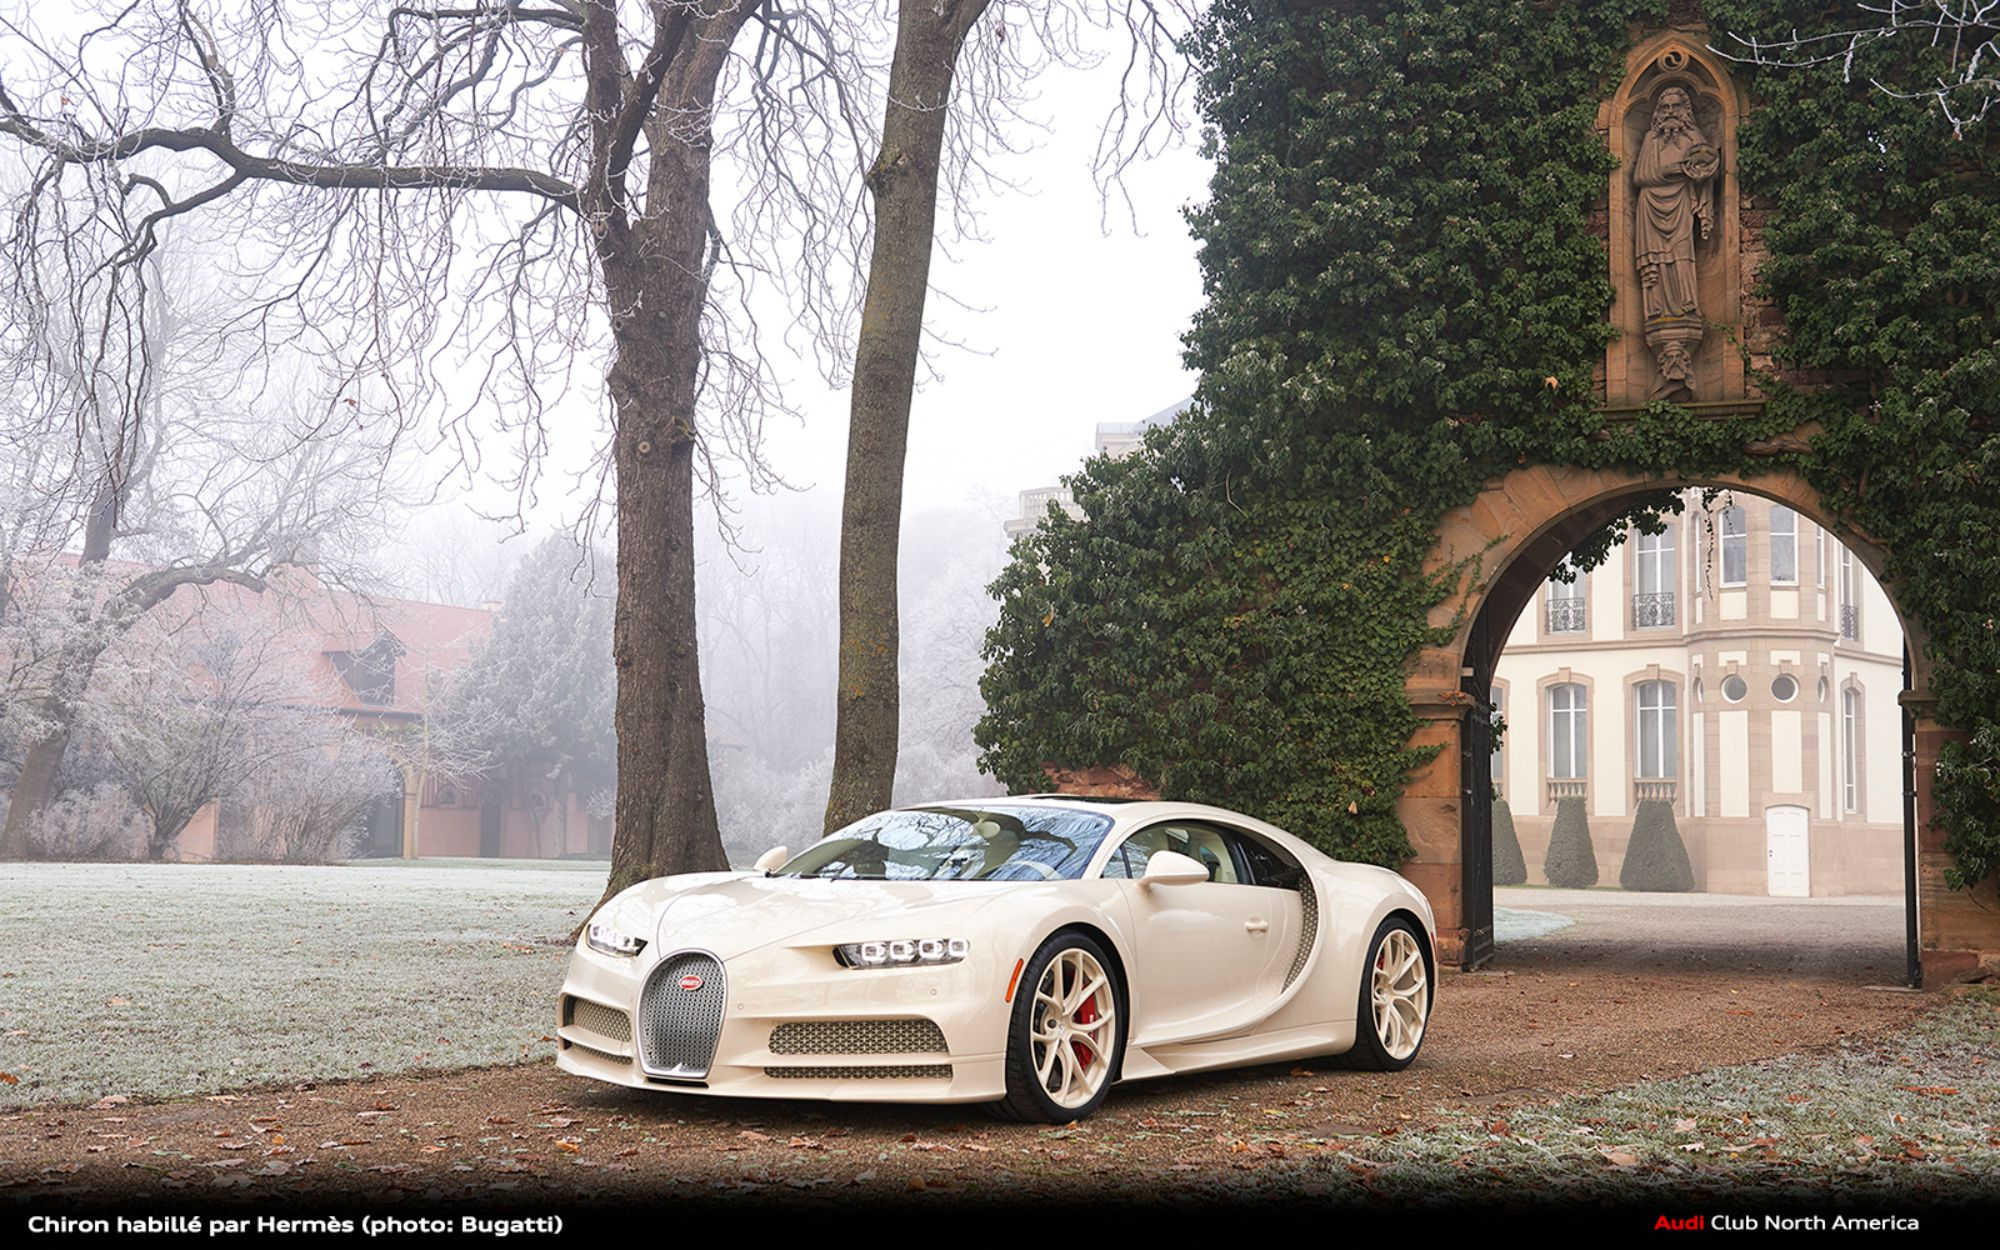 Chiron habillé par Hermès: The Pinnacle of Luxury Created Upon Request by a Bugatti Customer